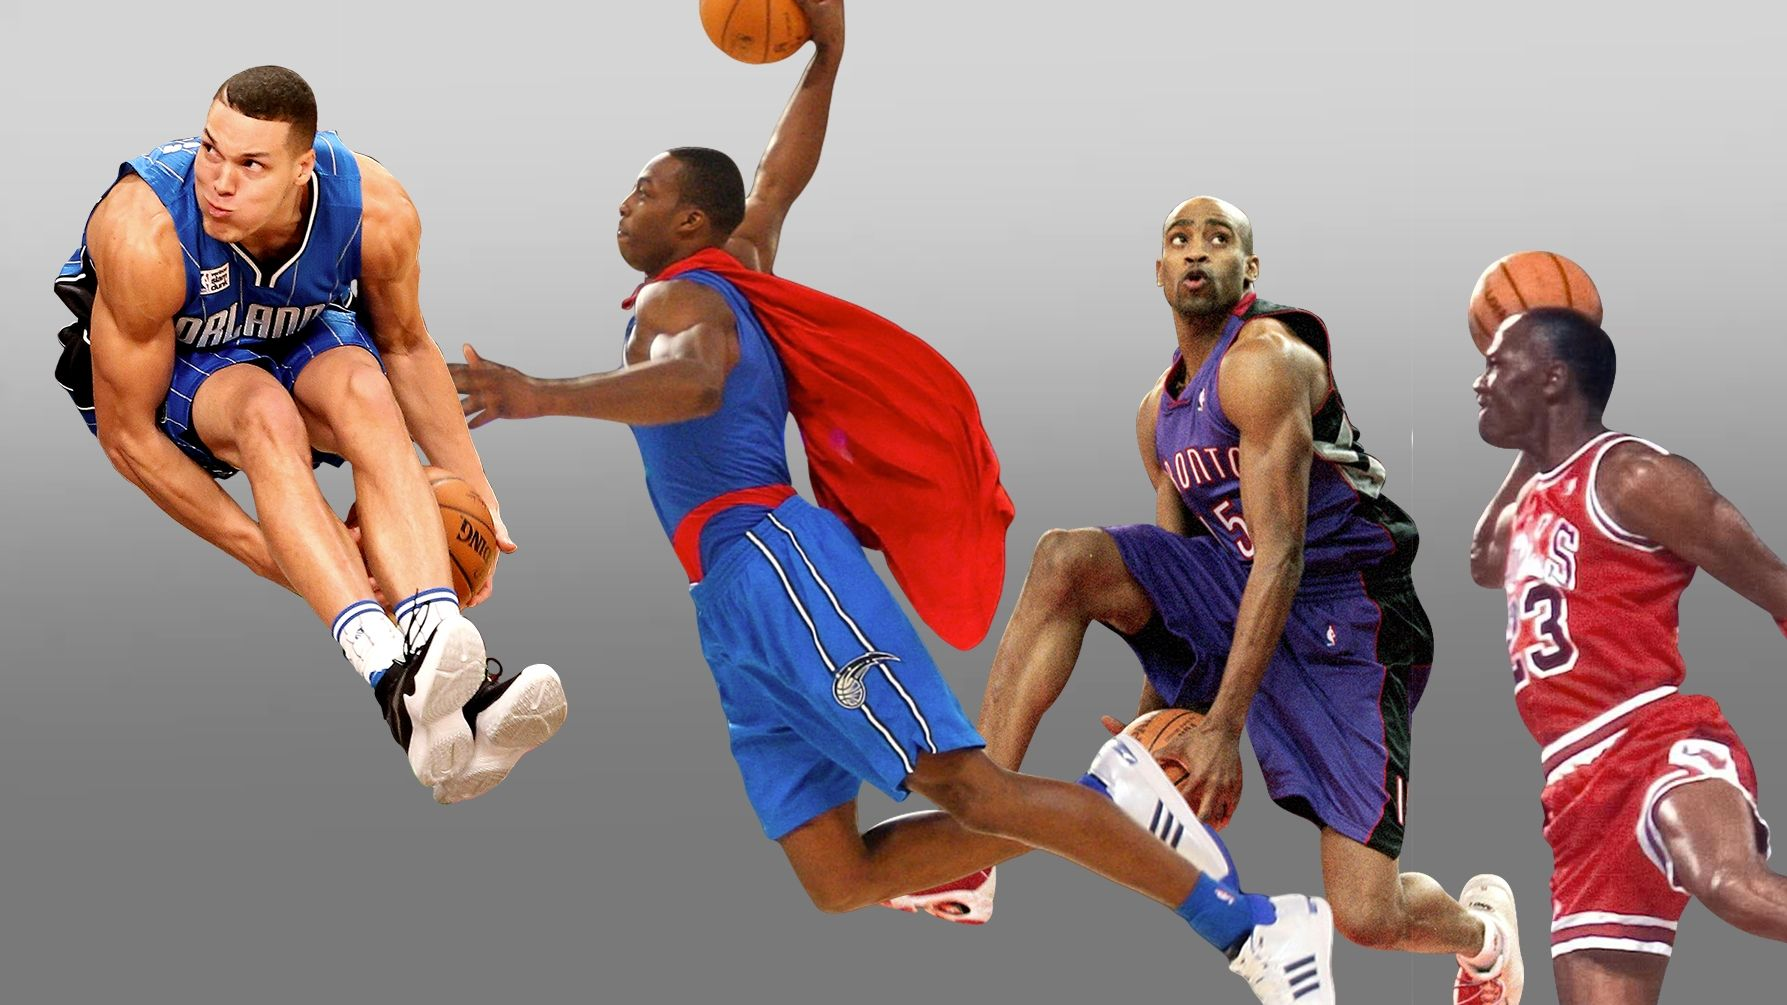 Greatest moments of the dunk contest